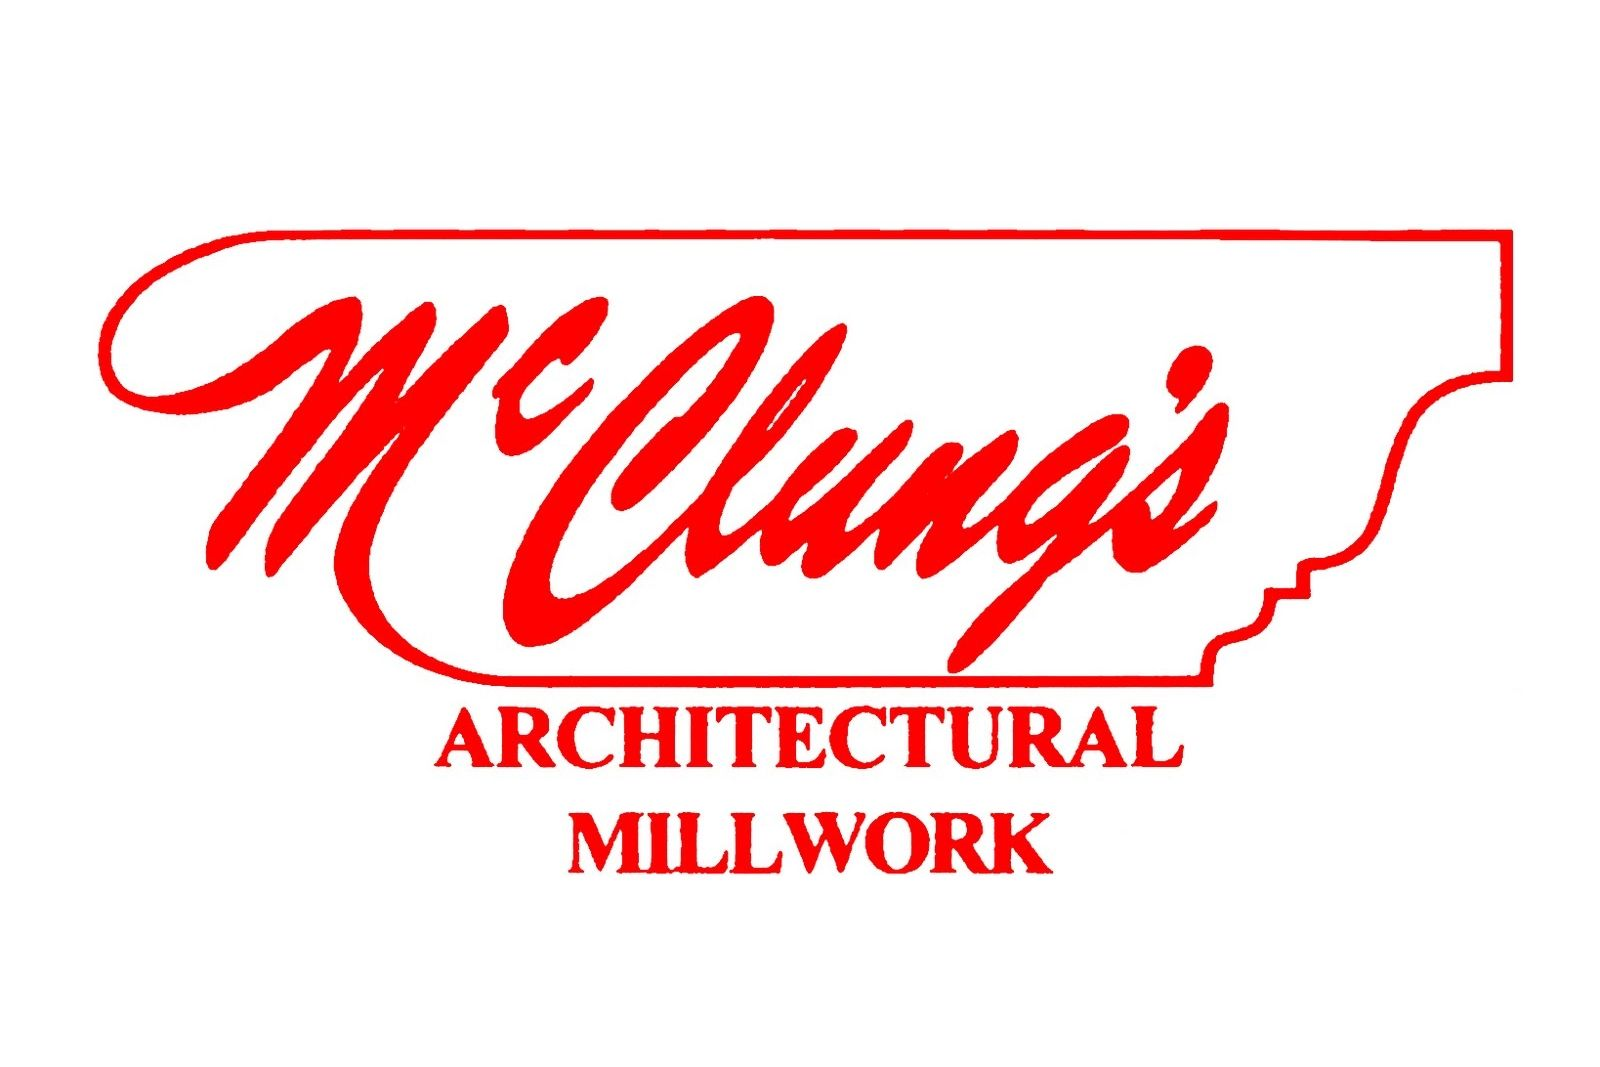 McClung's Architectural Millwork